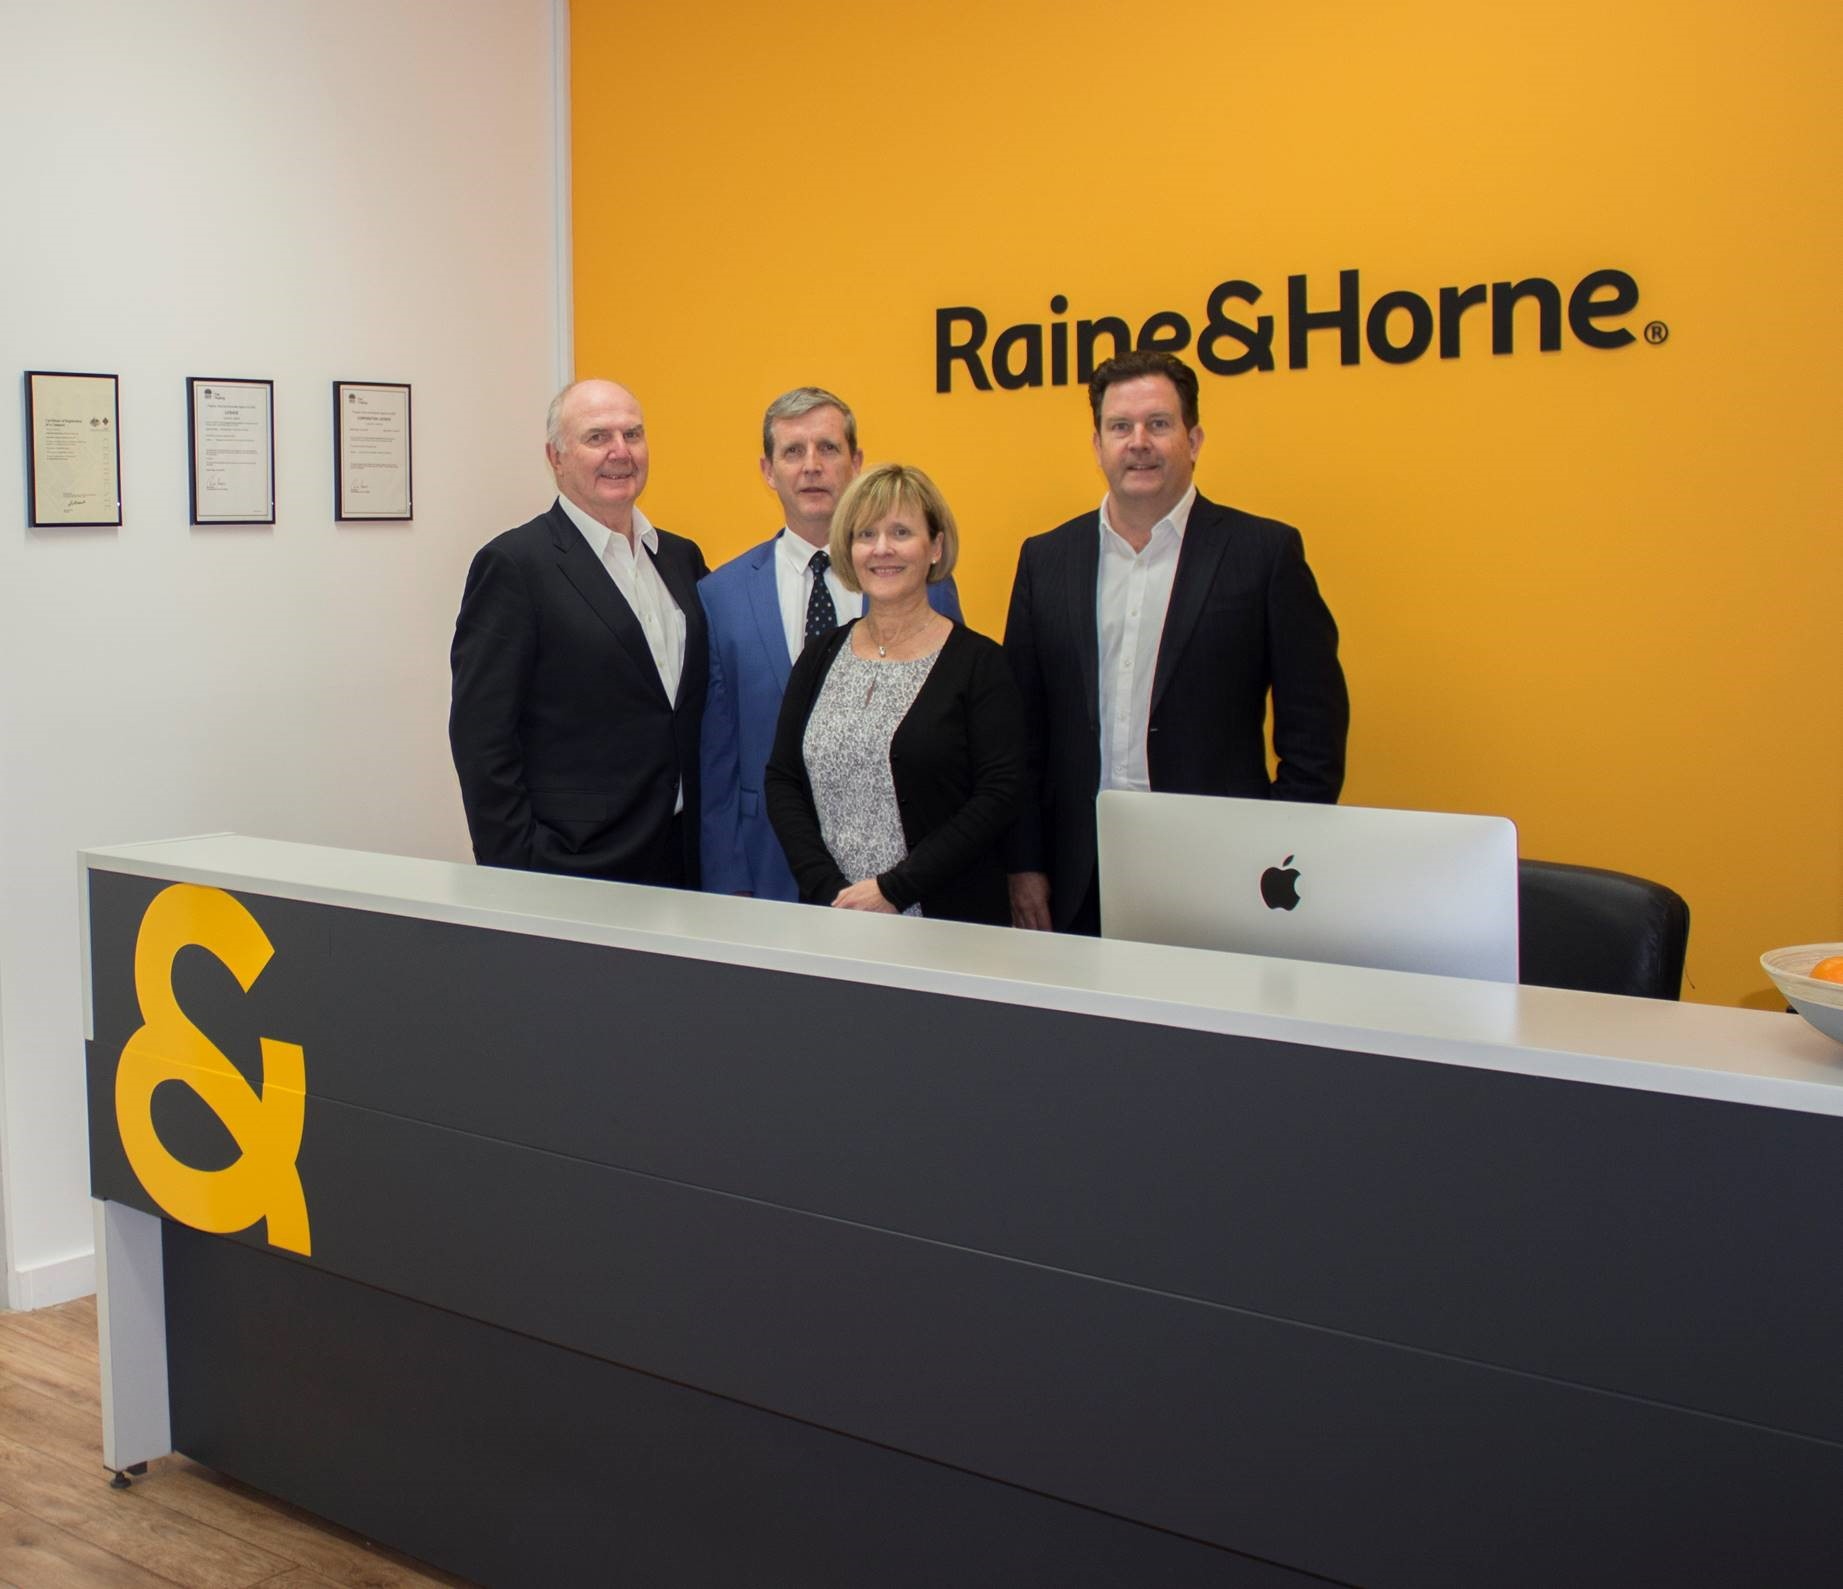 RH Hornsby opening - Brian Reid, Chris and Susie Hopkins, Angus Raine